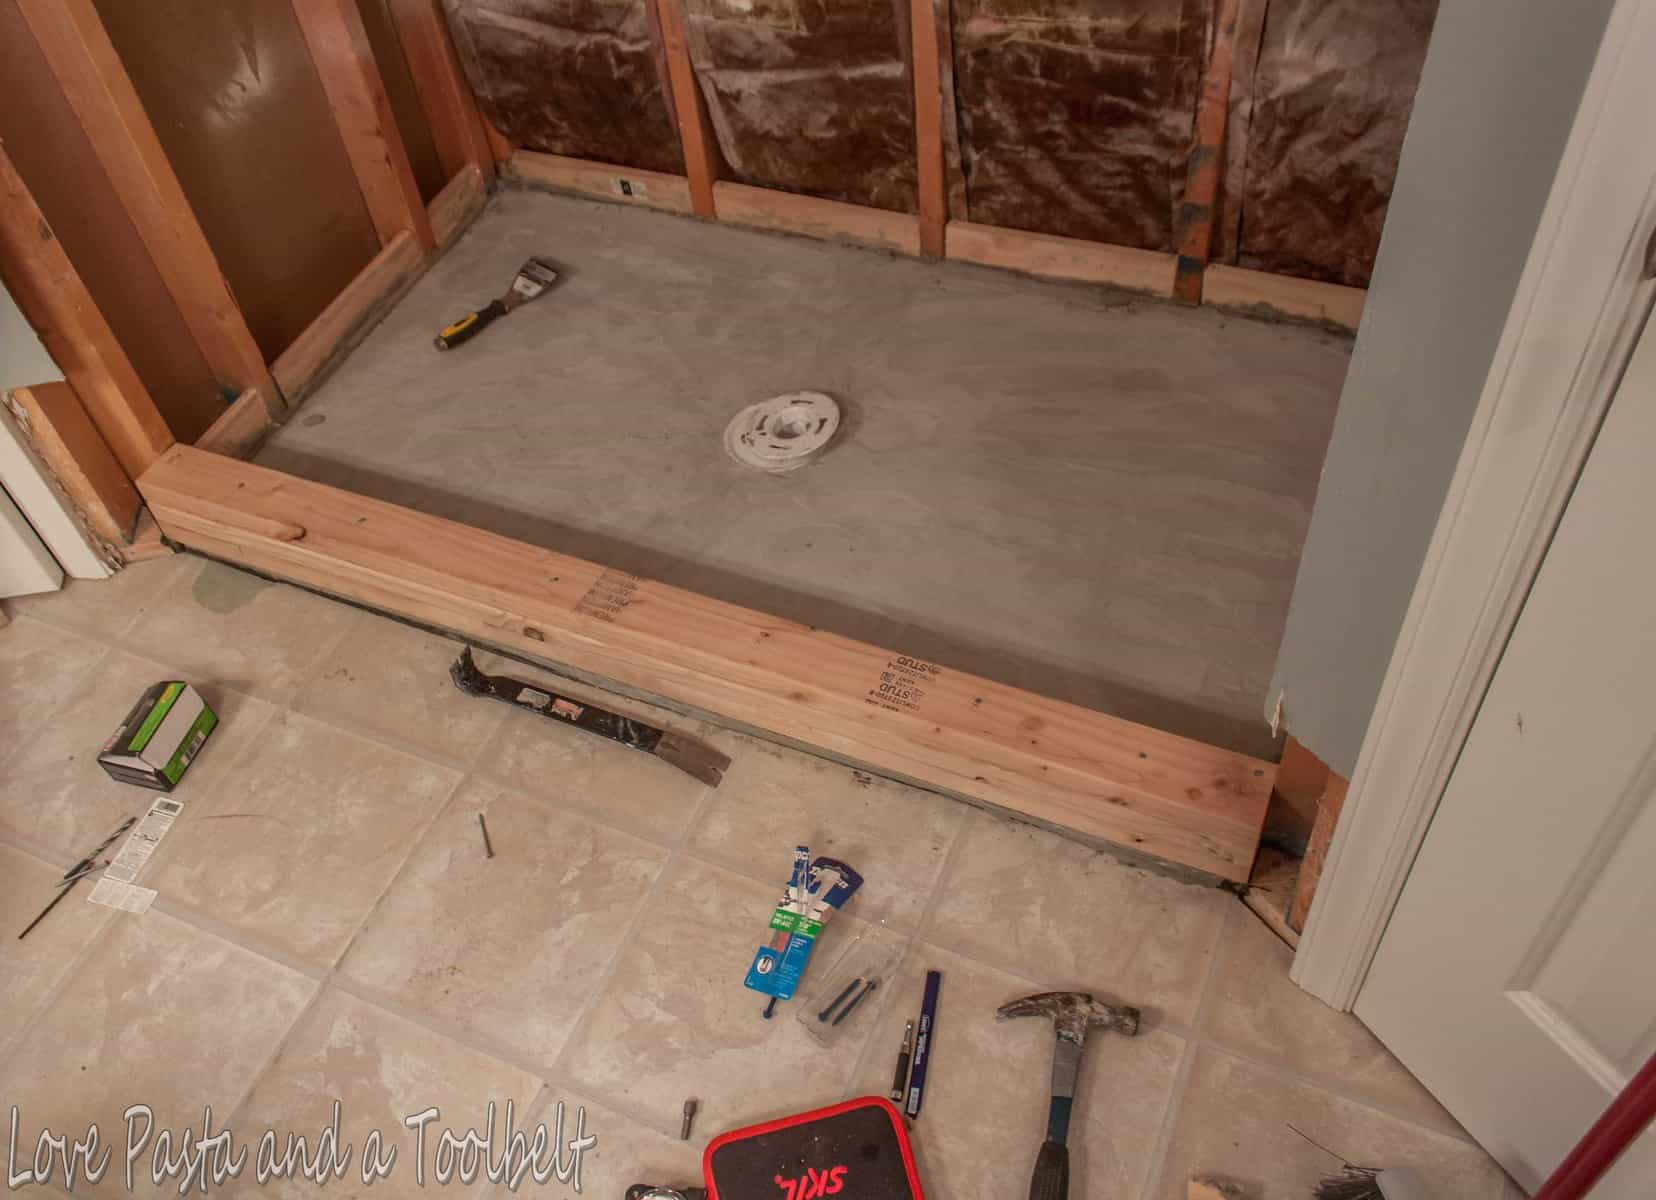 Diy Tile Shower Before And After Love Pasta And A Tool Belt